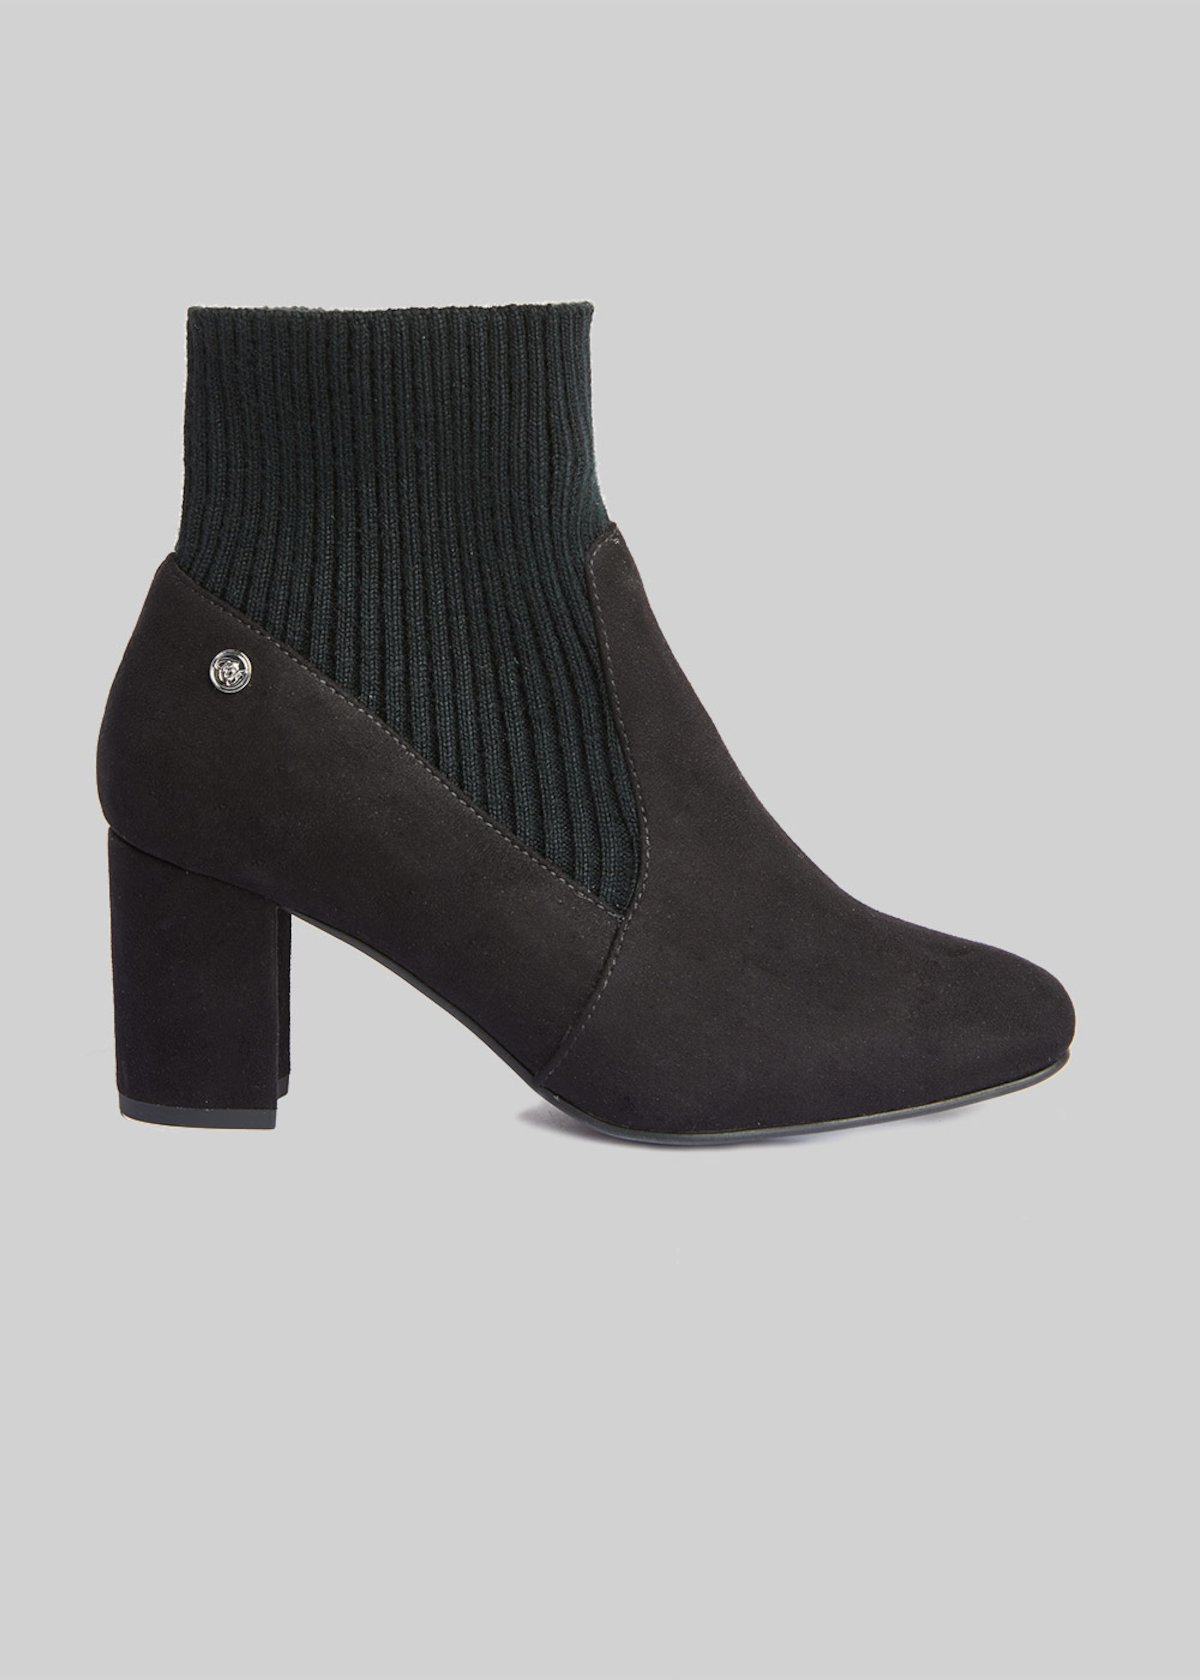 Sylvie ankle boots of fake suede with knit details